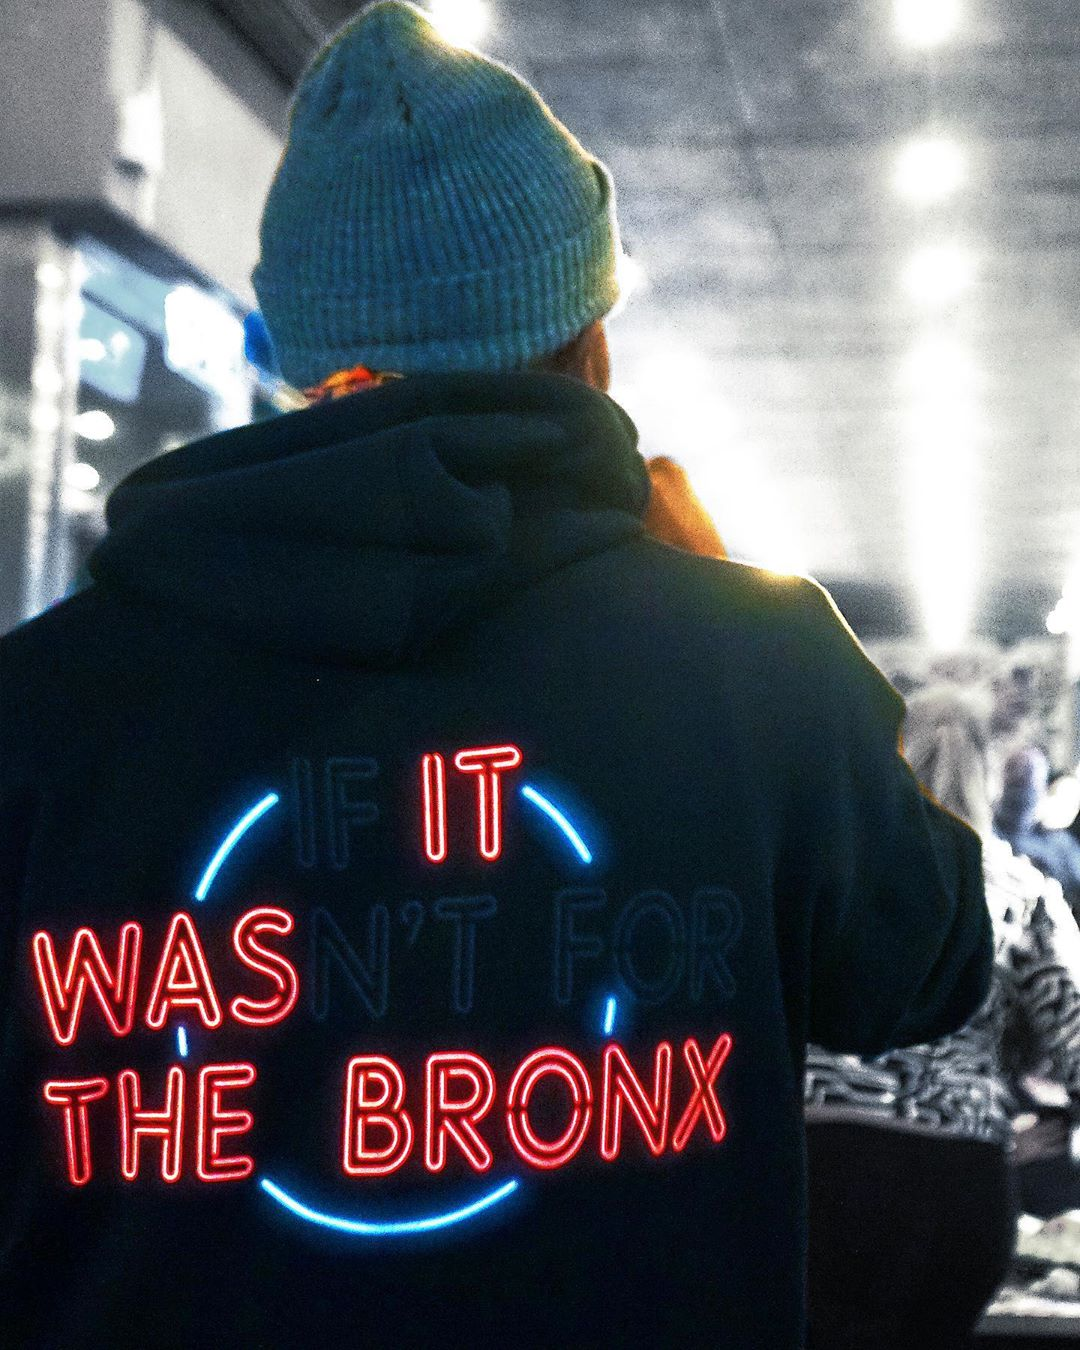 THE BRONX BREWERY and PERICO LIMITED ANNOUNCE BRAND-NEW STREETWEAR PARTNERSHIP